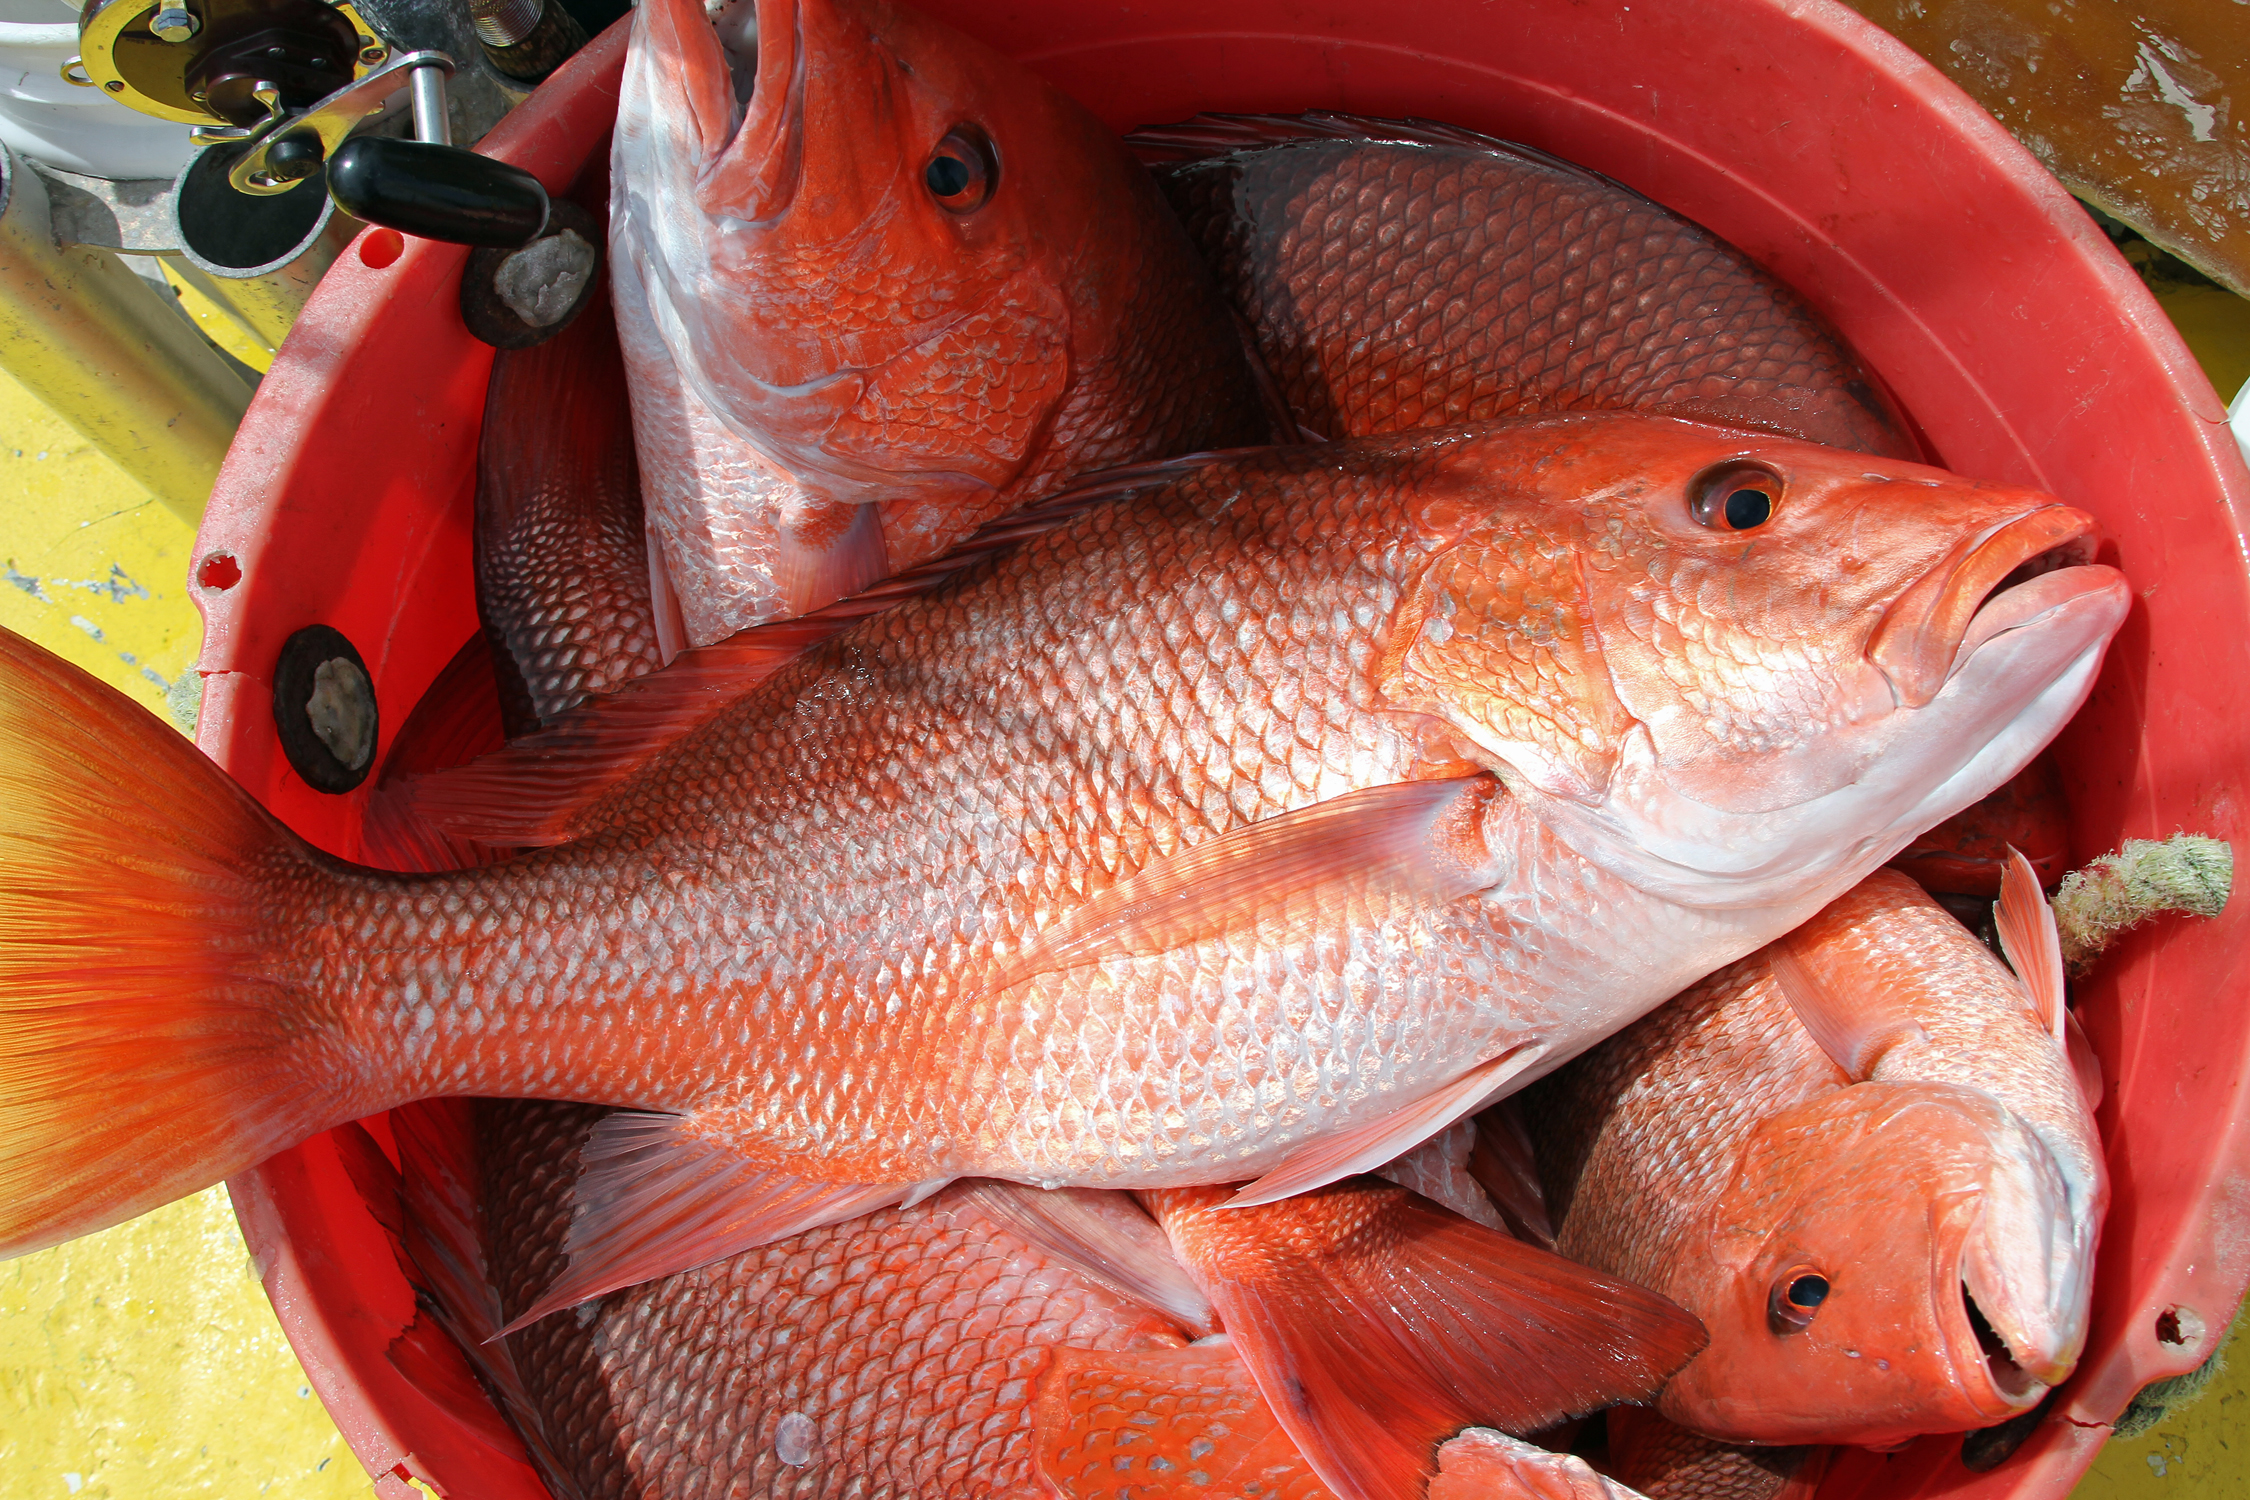 The daily bag limit will be two red snapper per person, per day with a minimum size limit of 16 inches total length.